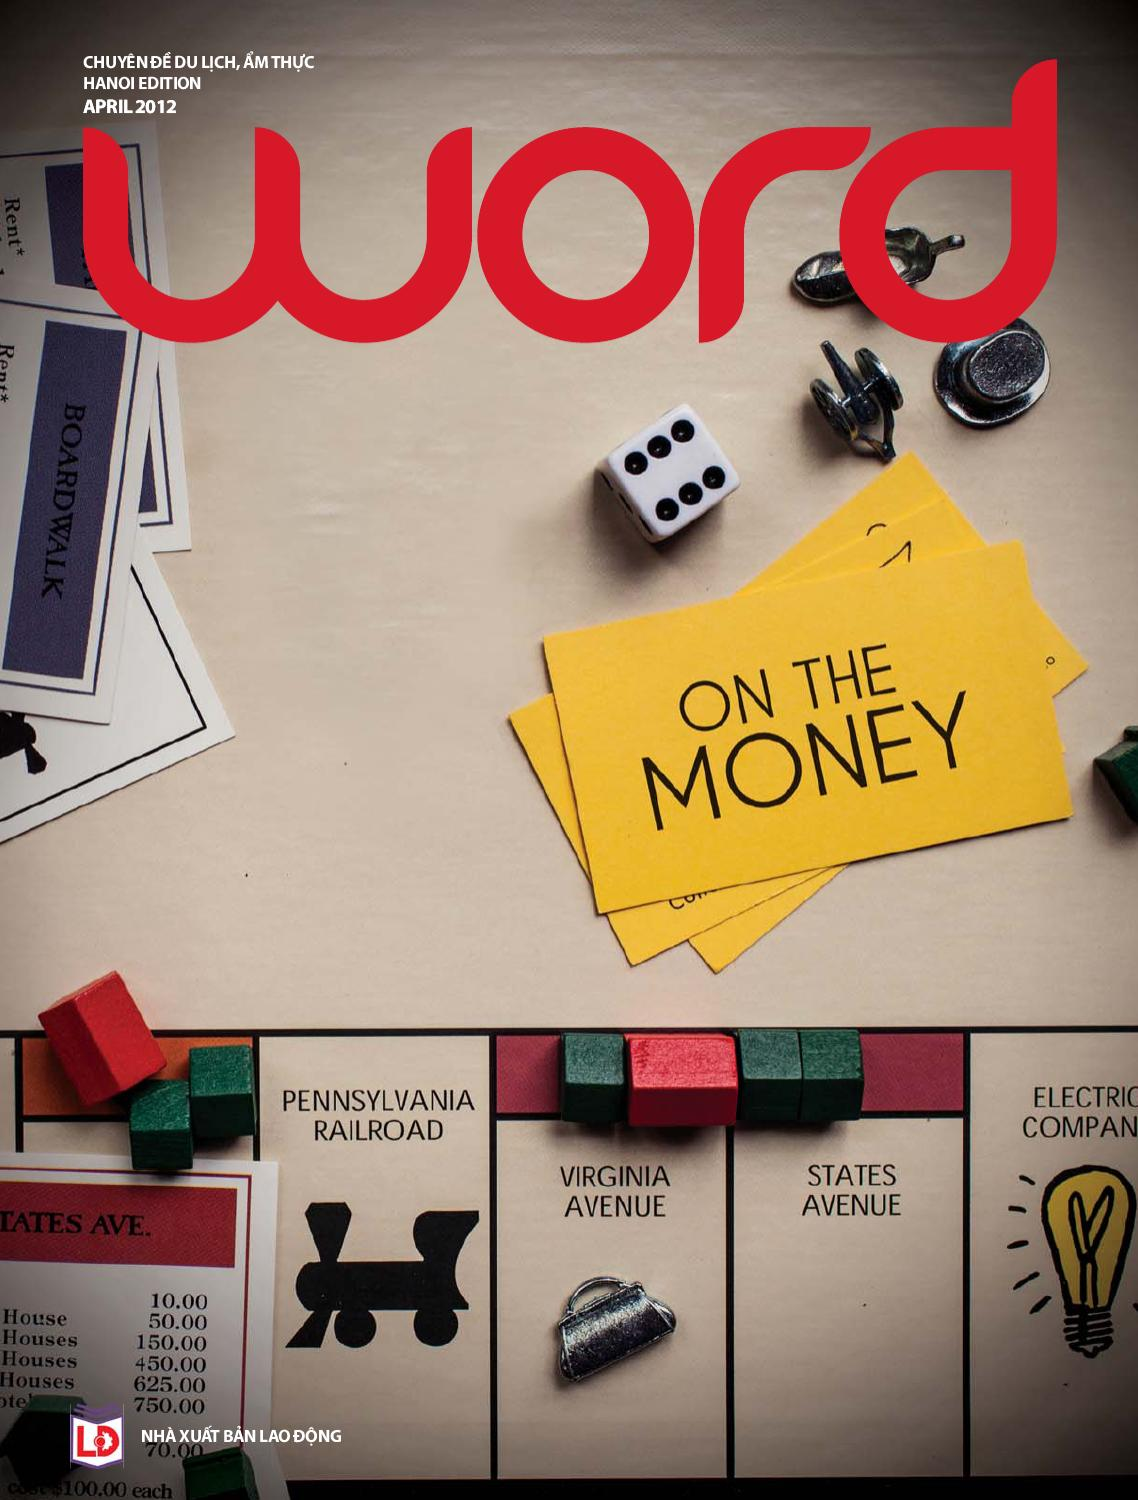 bf5f990aee524e The Word Ha Noi April 2012 Issue by Word Vietnam - issuu